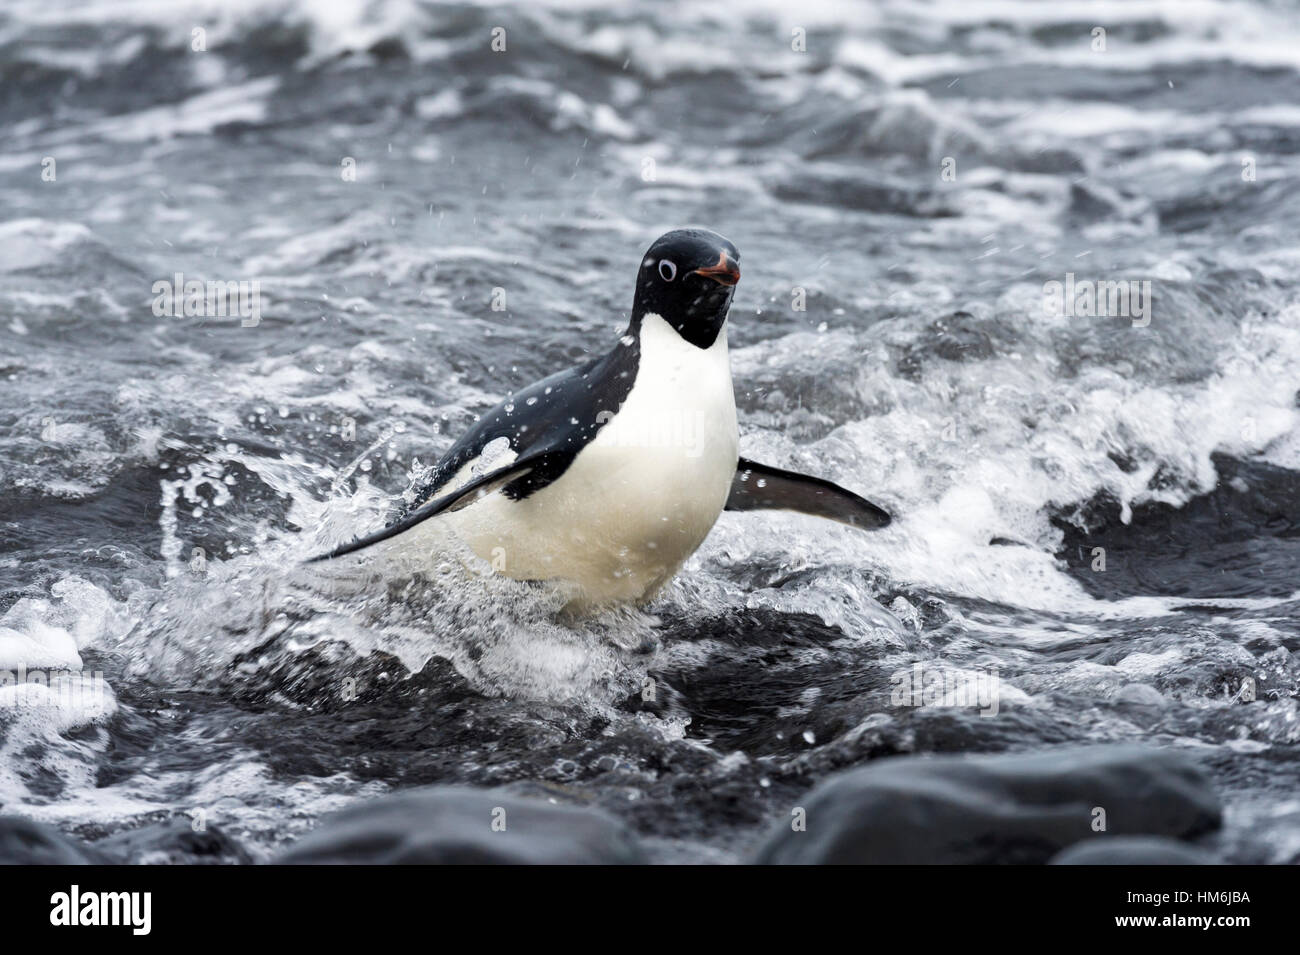 An Adelie Penguin launches from the surf onto a rocky beach after feeding. - Stock Image